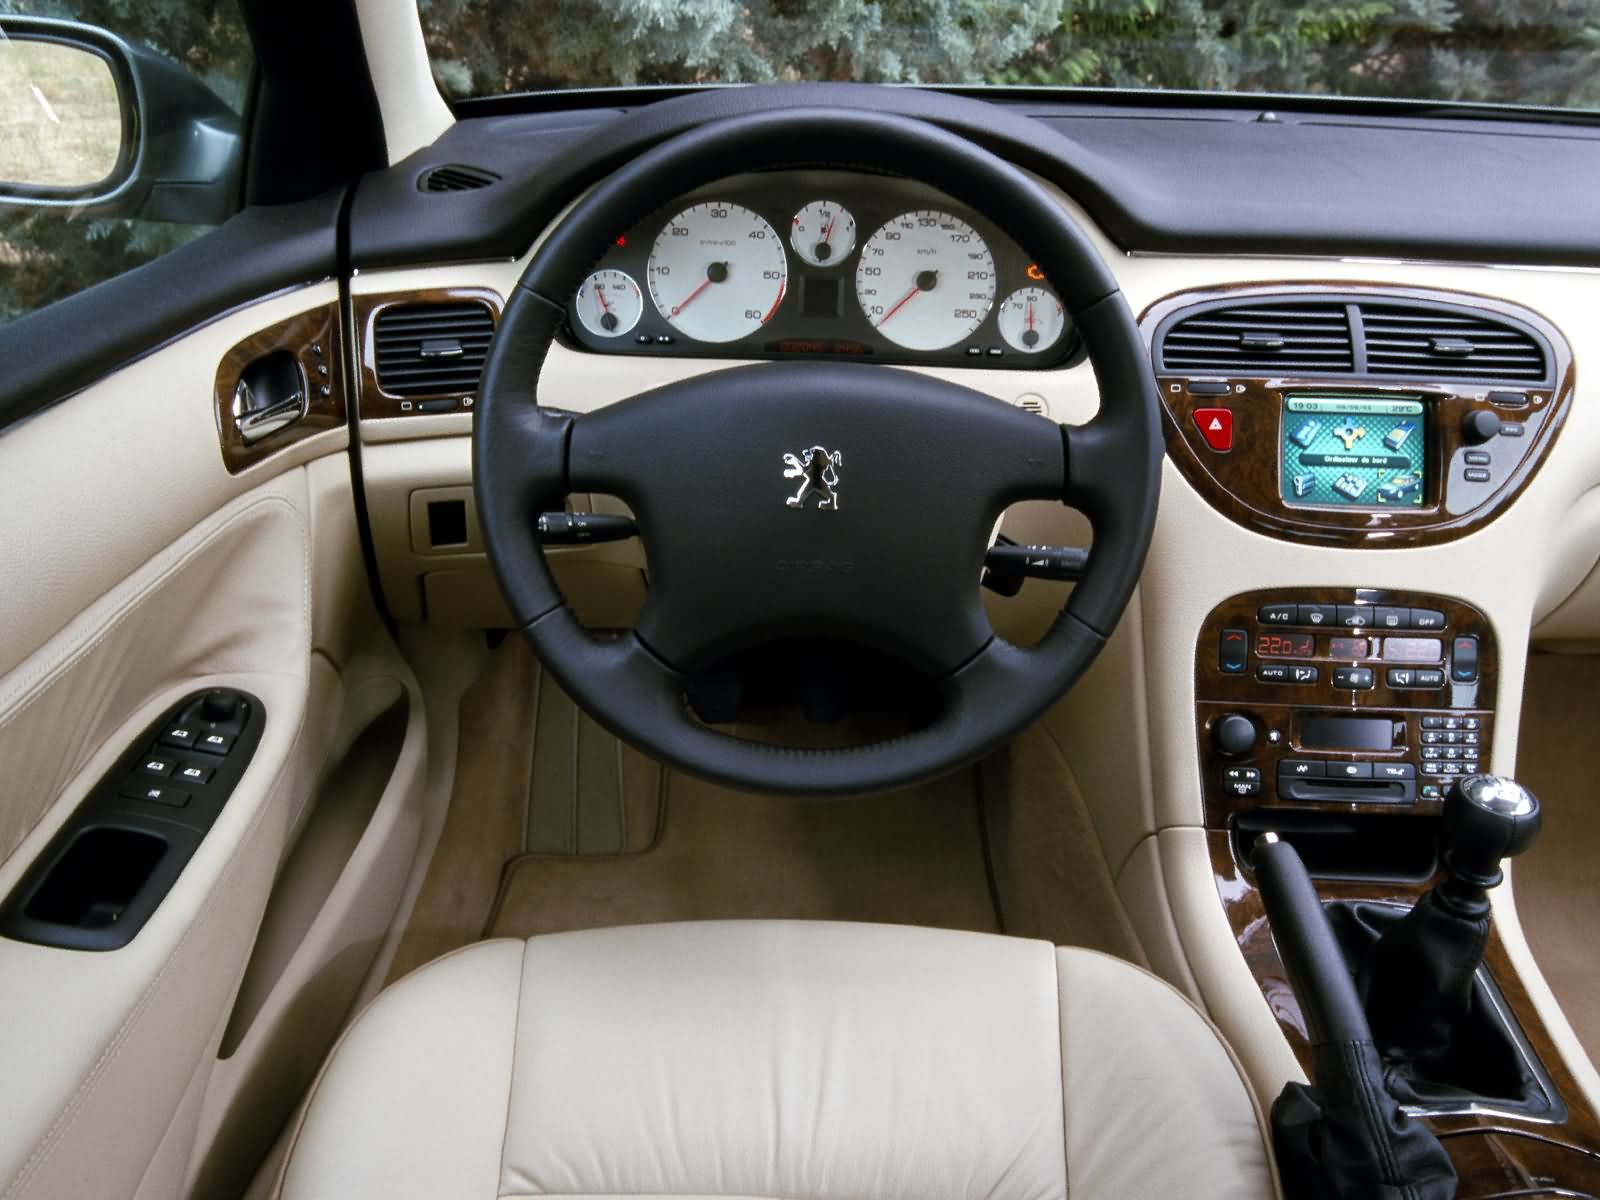 Peugeot 607 picture 10546 peugeot photo gallery for Interieur 607 v6